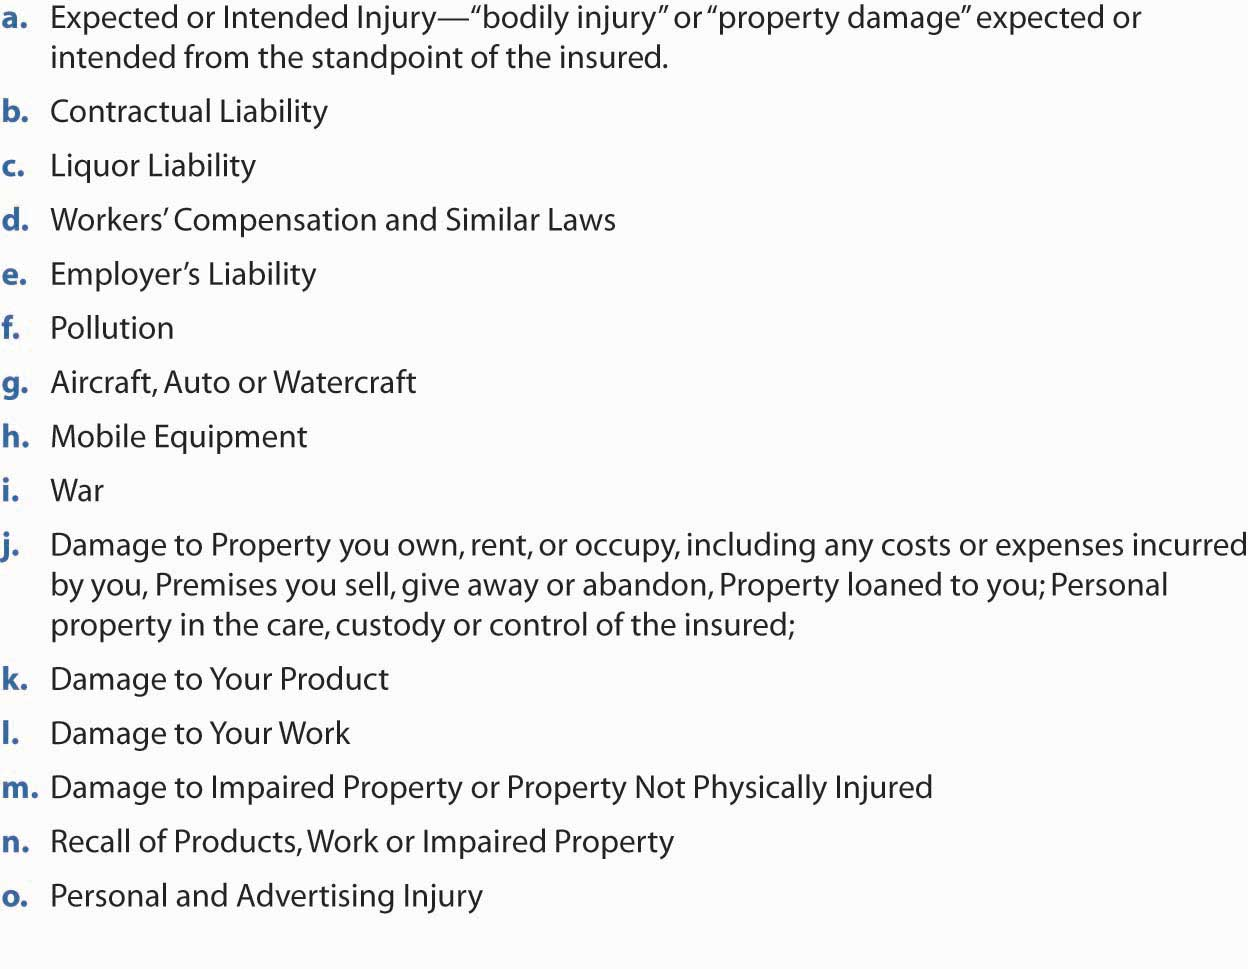 Business Personal Property Exclusions